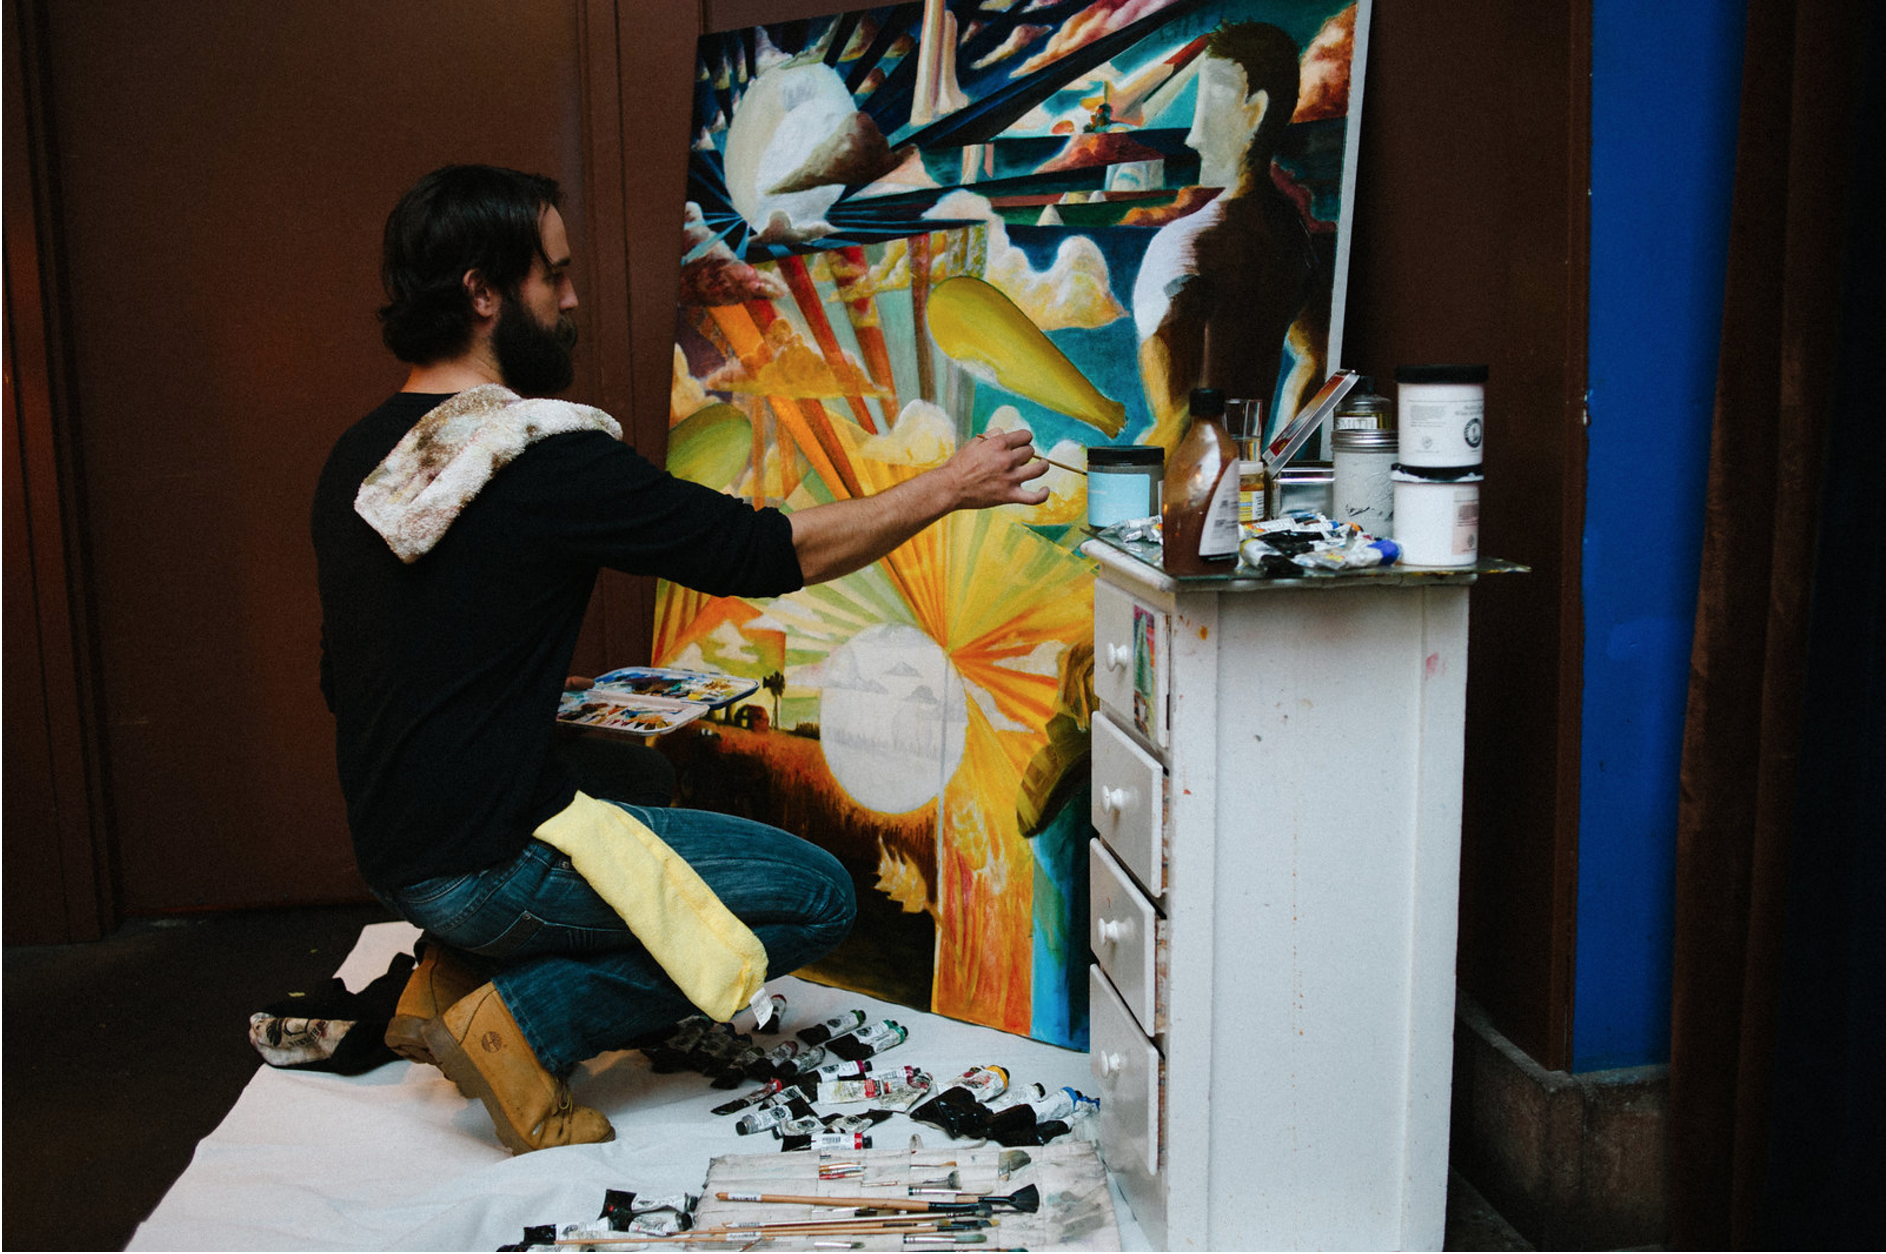 Live painting by Jake Grahn